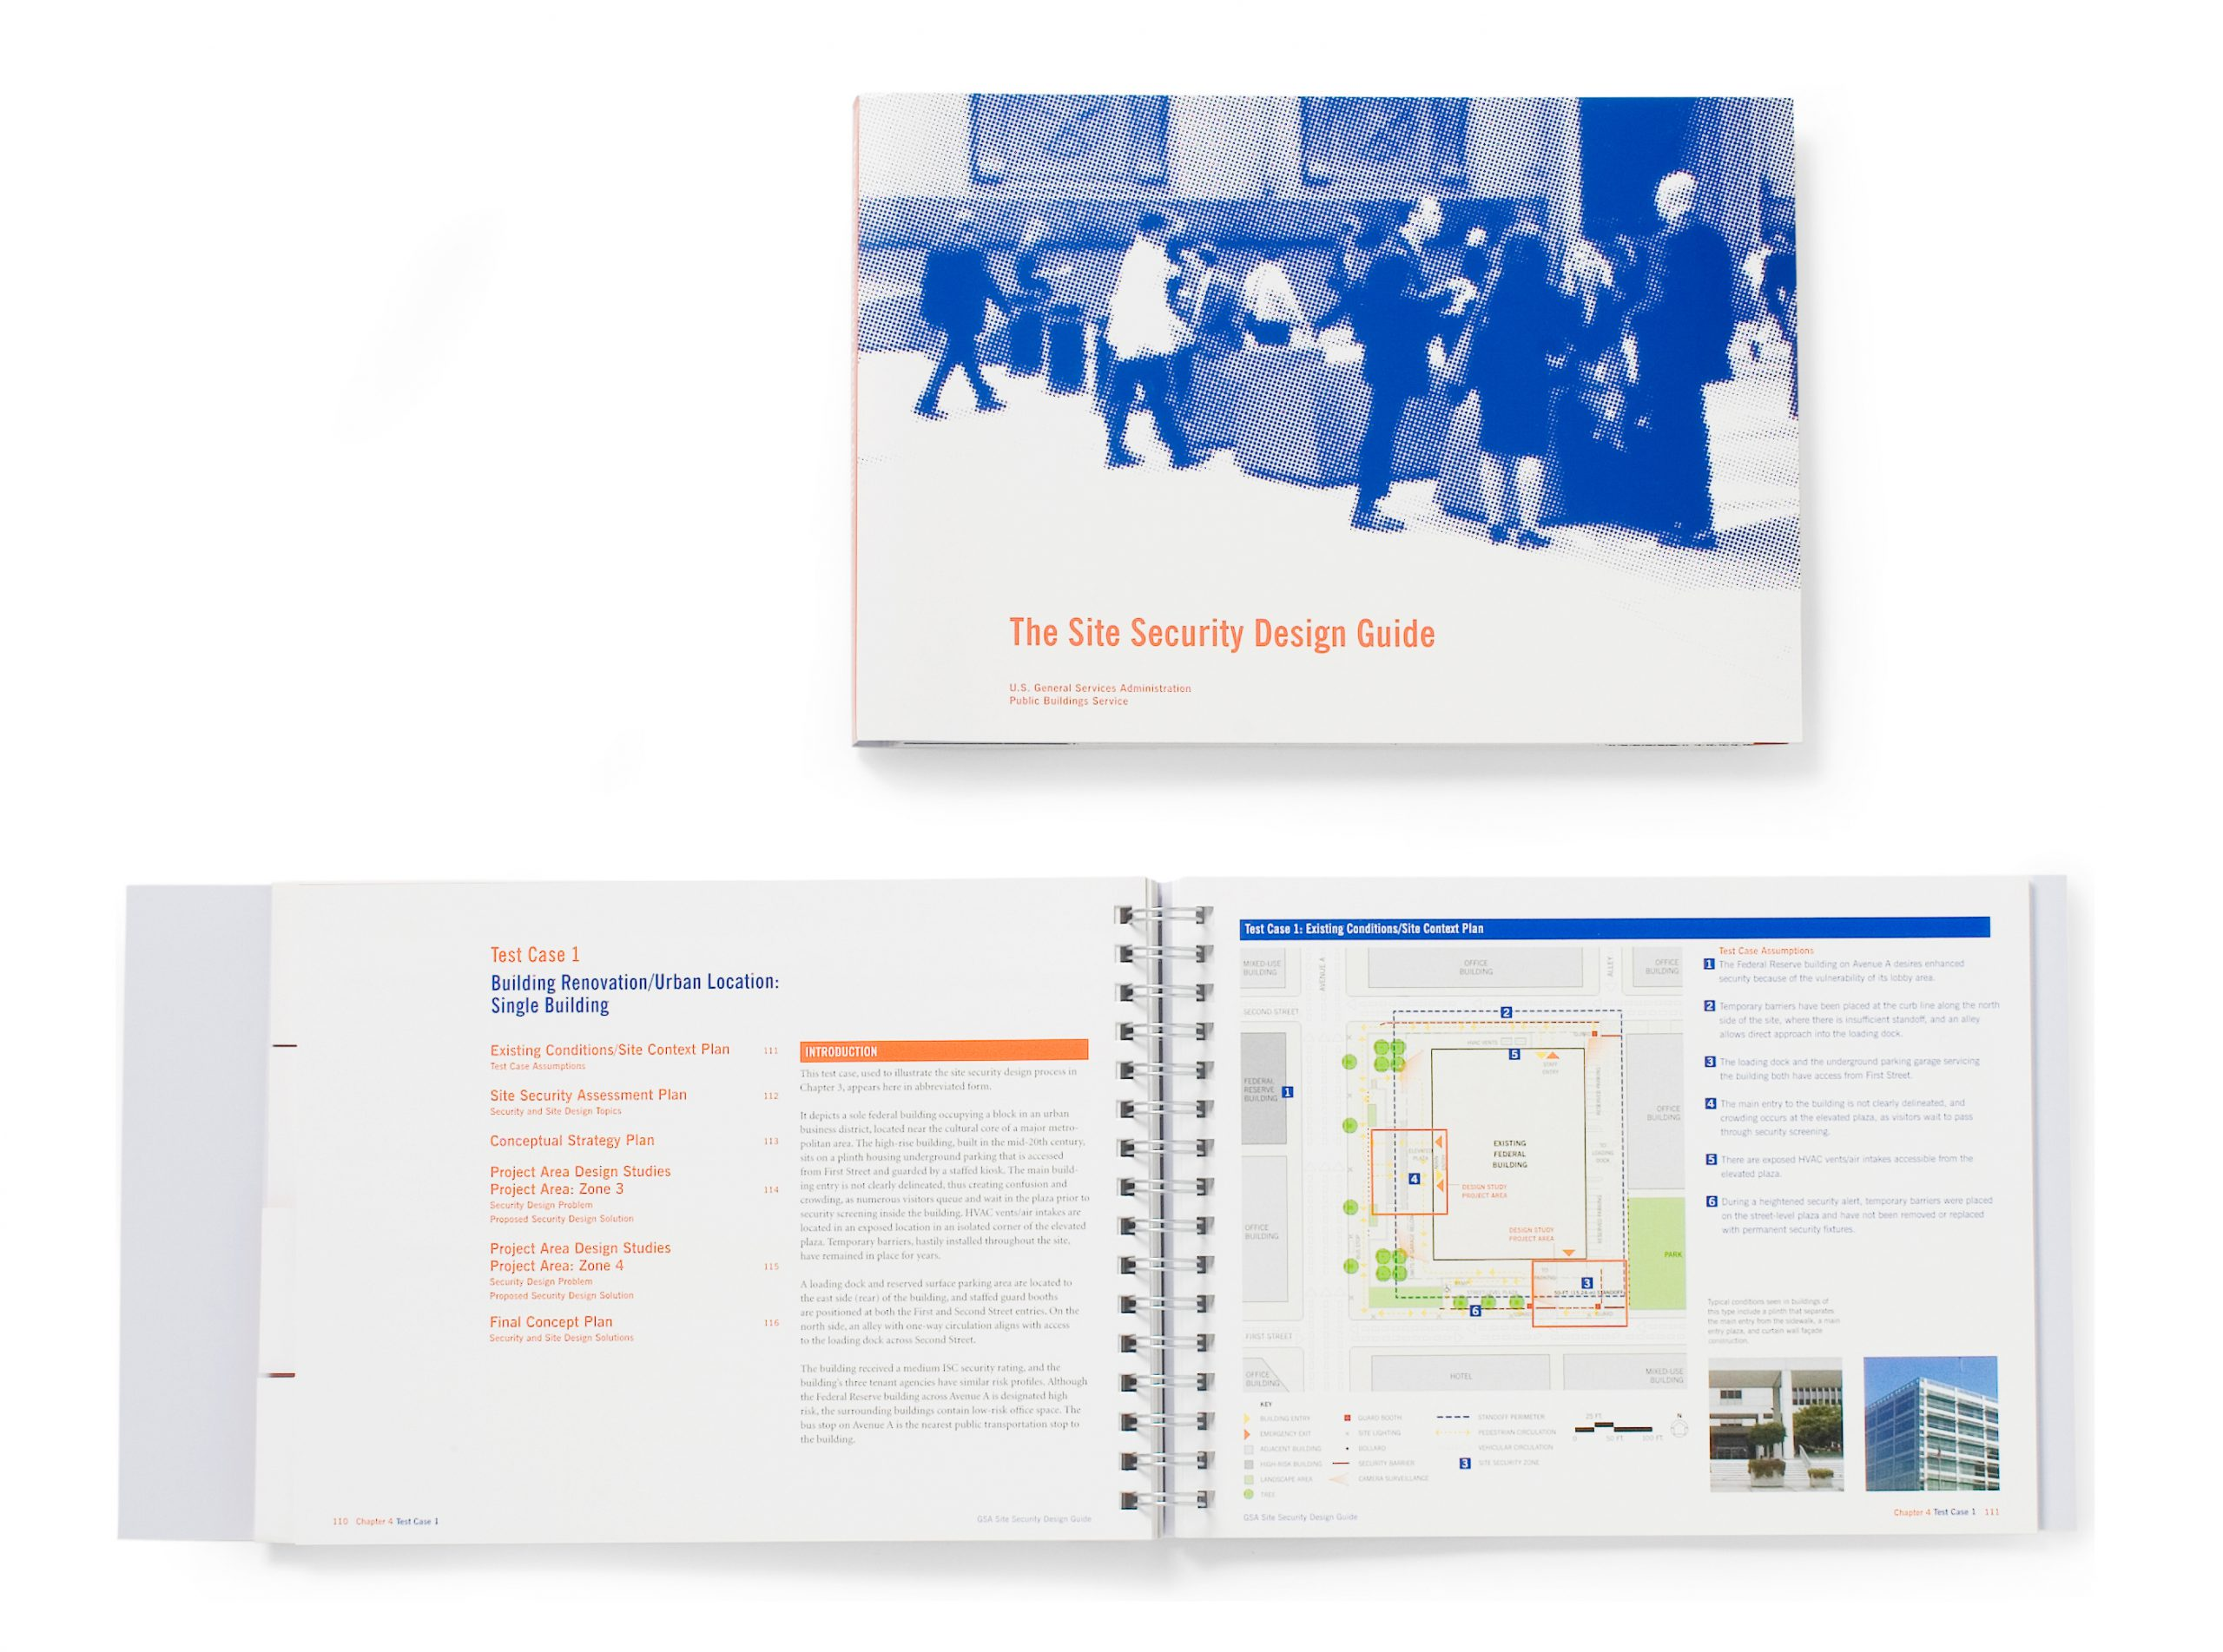 Project image 1 for Site Security Design Guide, General Services Administration